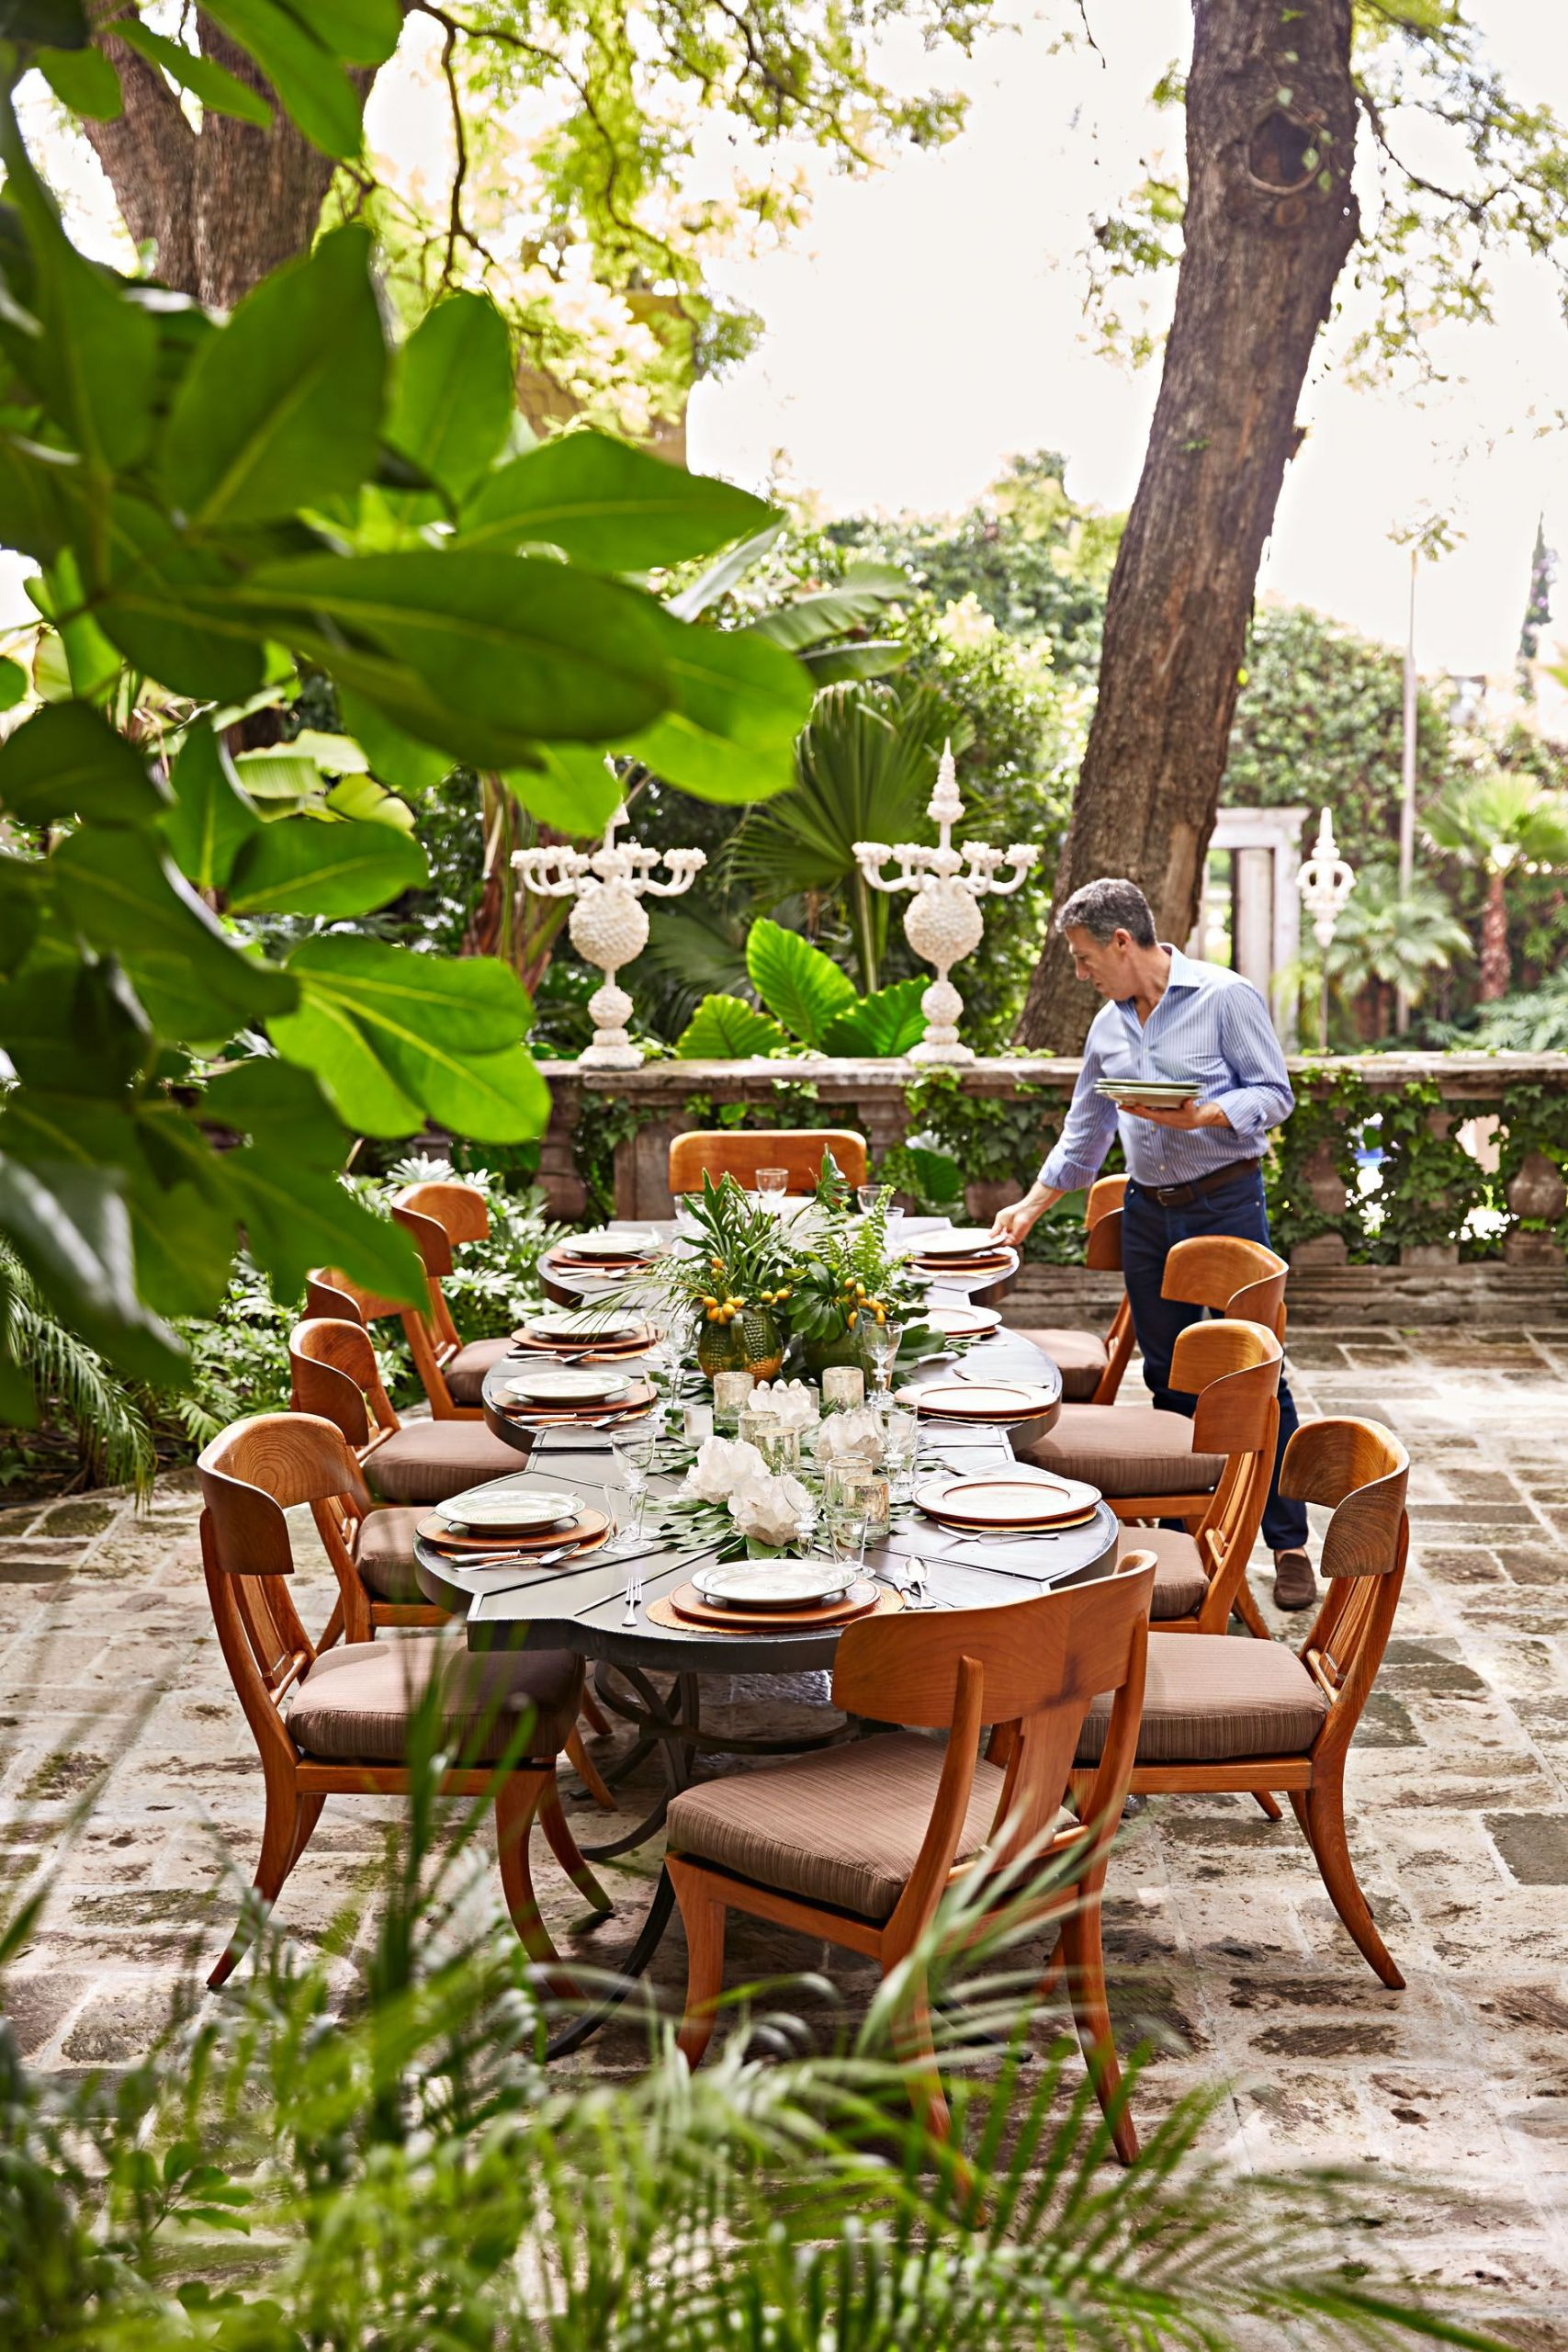 Table De Jardin Tressé Frais southern Nights In 2019 Home Of 24 Charmant Table De Jardin Tressé